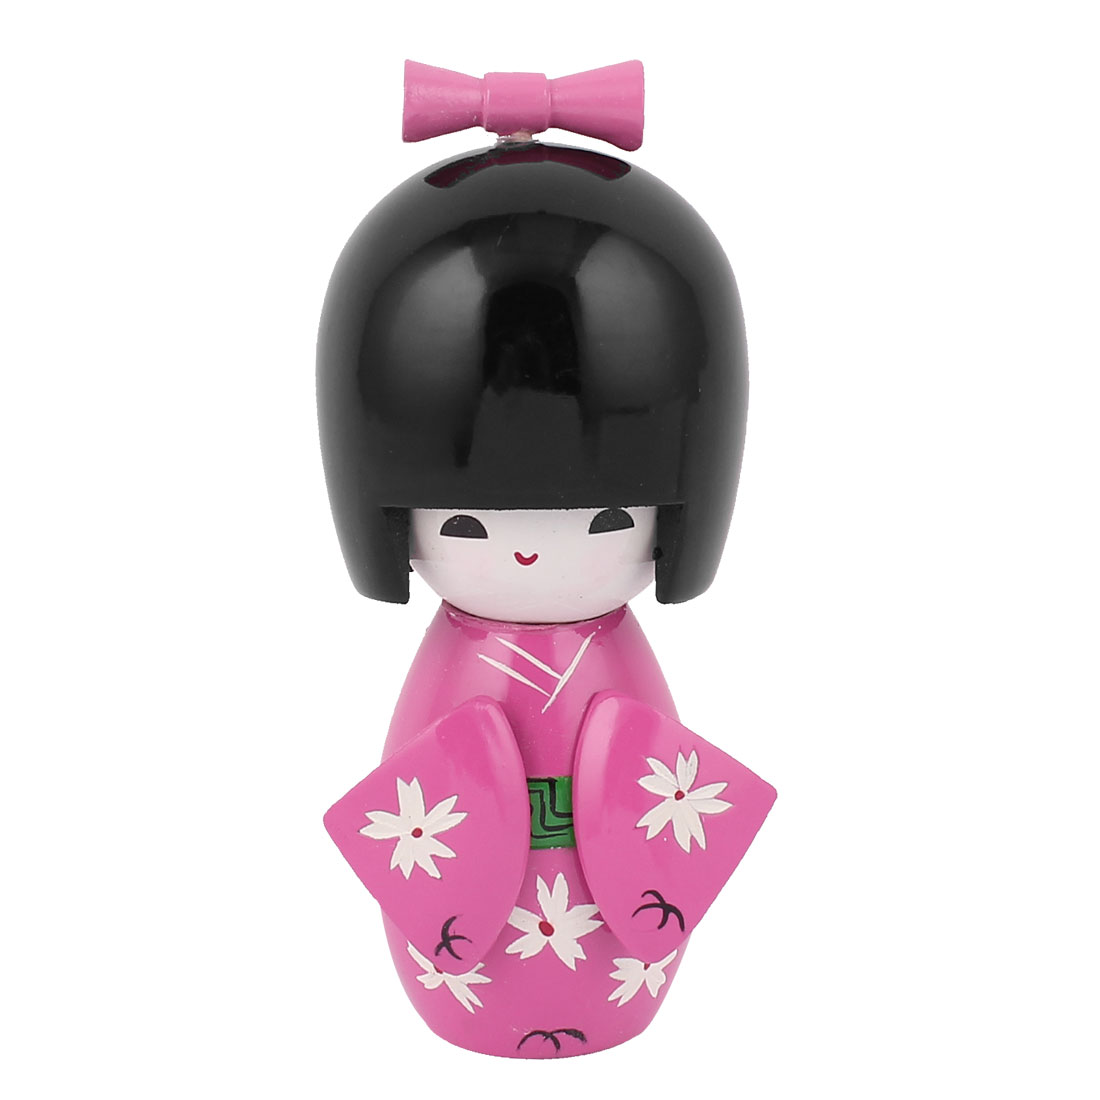 Manual Flower Decor Kimono Wooden Craft Gift Japanese Kokeshi Doll Fuchsia